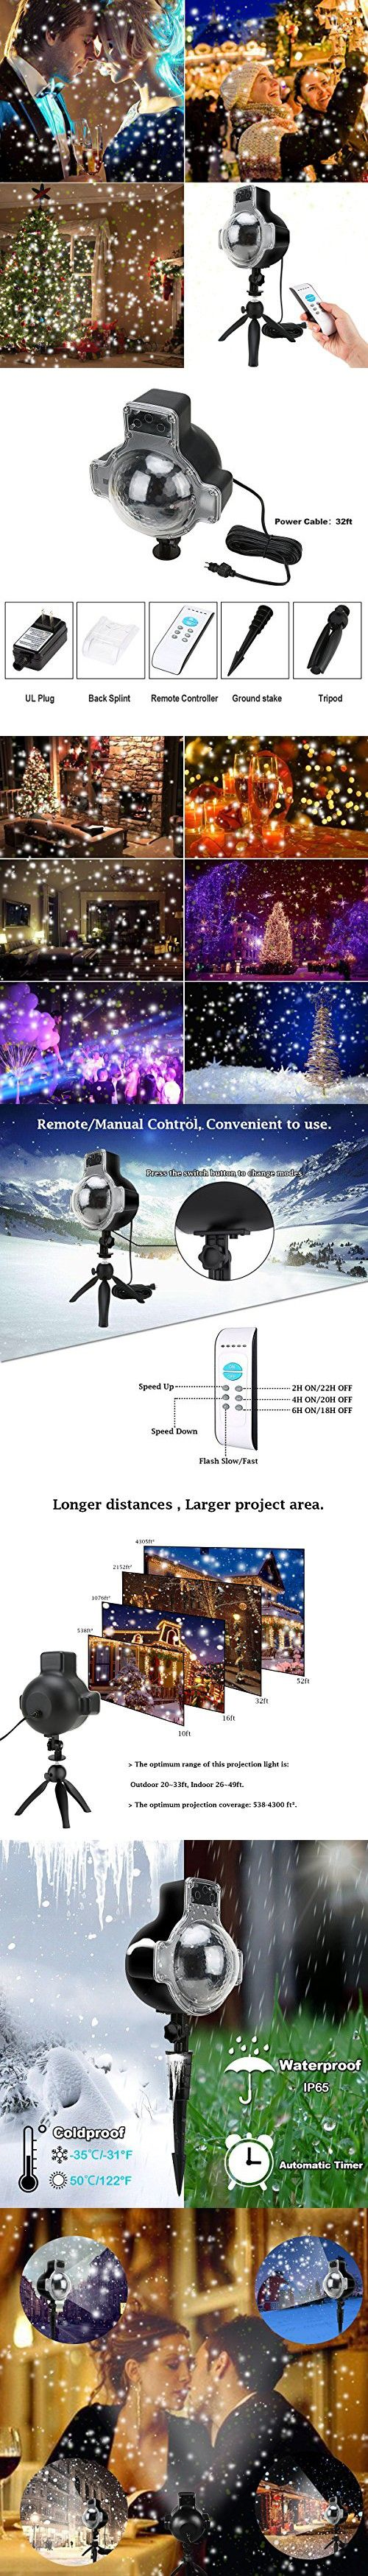 Snowfall Projector LED Lights Wireless Remote, IP65 Waterproof Rotatable White Snow For Christmas Halloween Holiday Party Wedding Garden New Year House Landscape Decorations